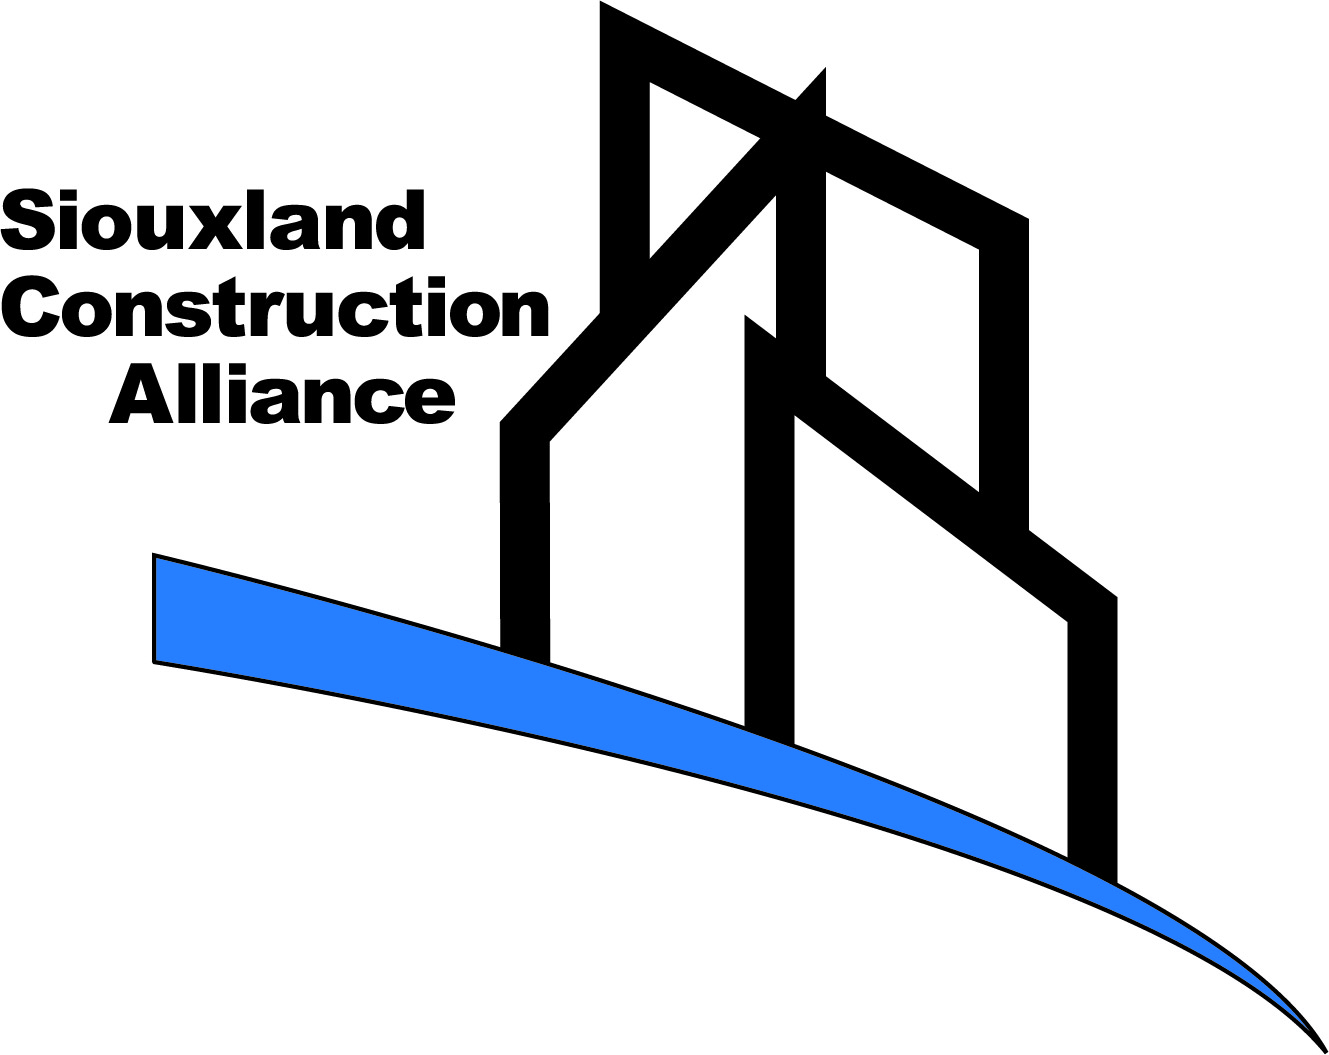 Siouxland Construction Alliance